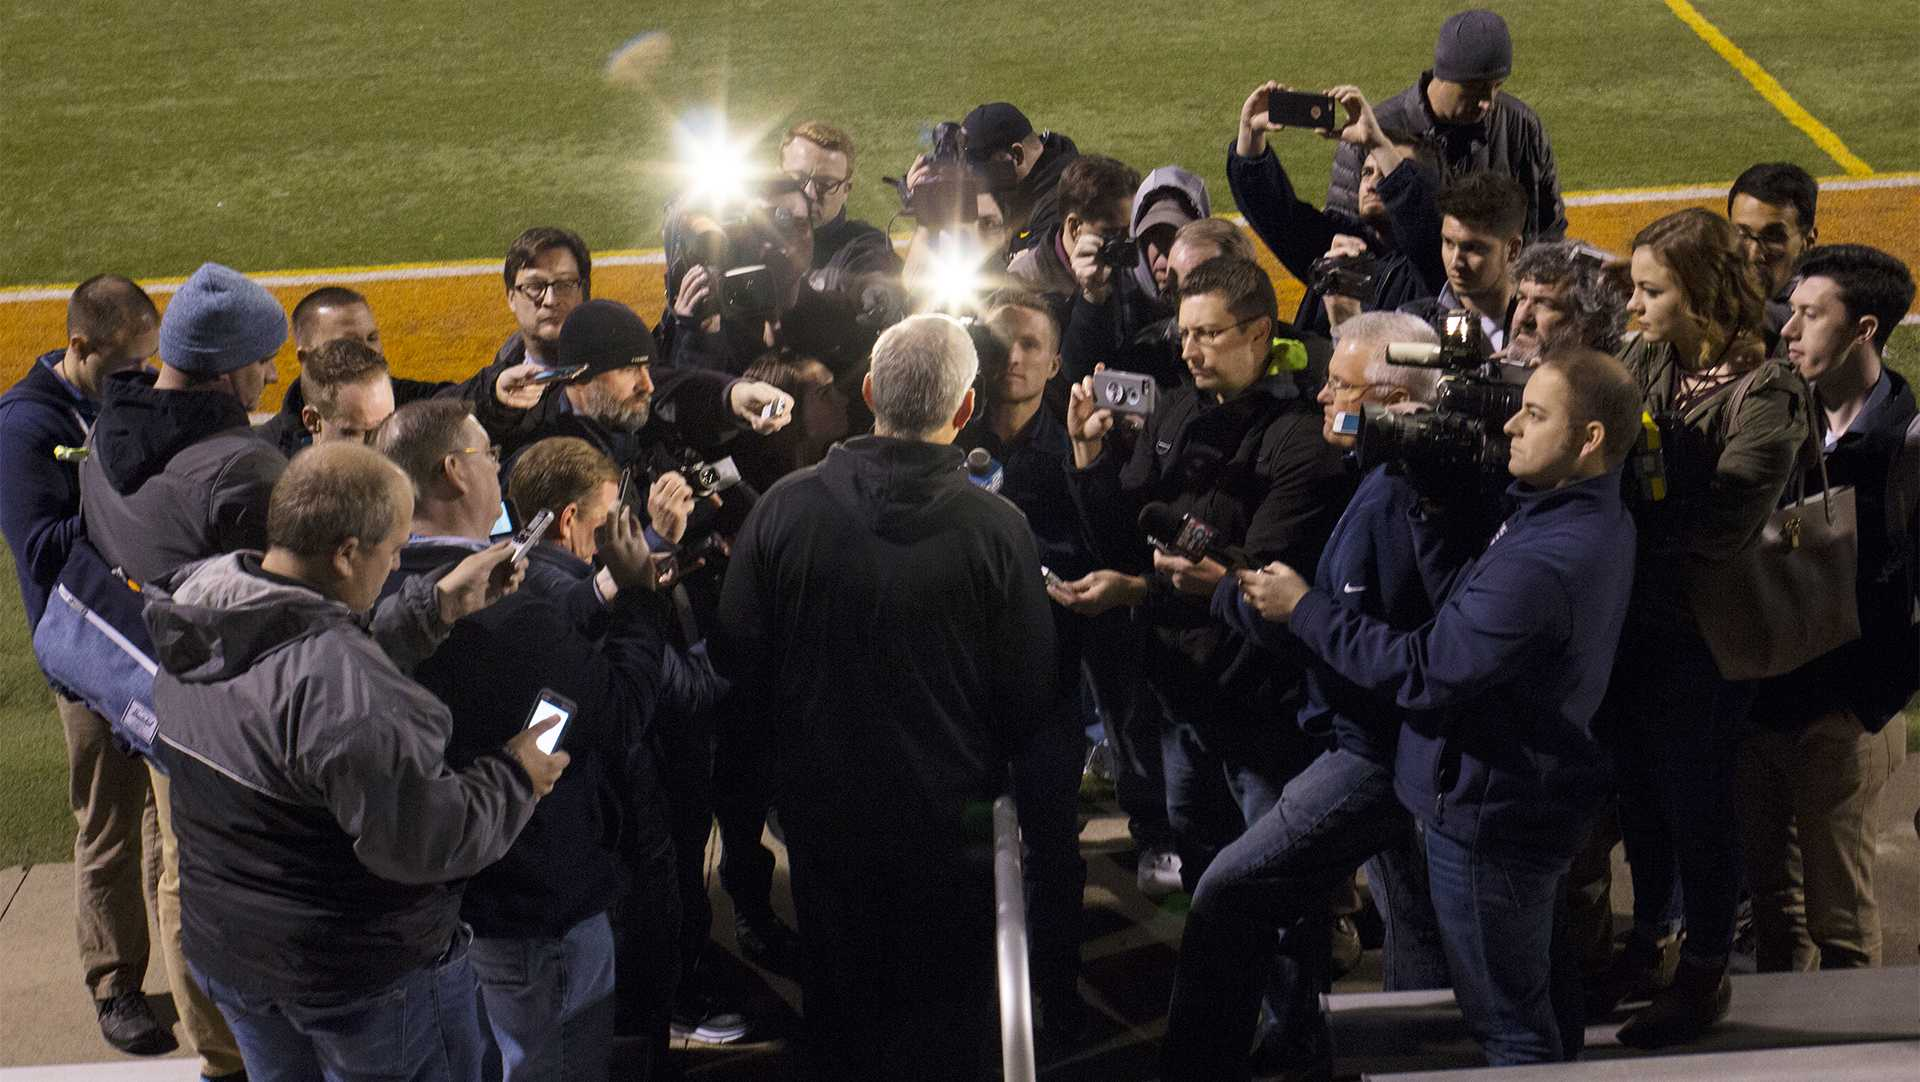 Iowa head coach Kirk Ferentz speaks with members of the media during a spring practice at Valley Stadium in Des Moines on Friday, April 7, 2017. The Hawkeyes will host a night spring game in Iowa City on Friday, April 21. (The Daily Iowan/Joseph Cress)